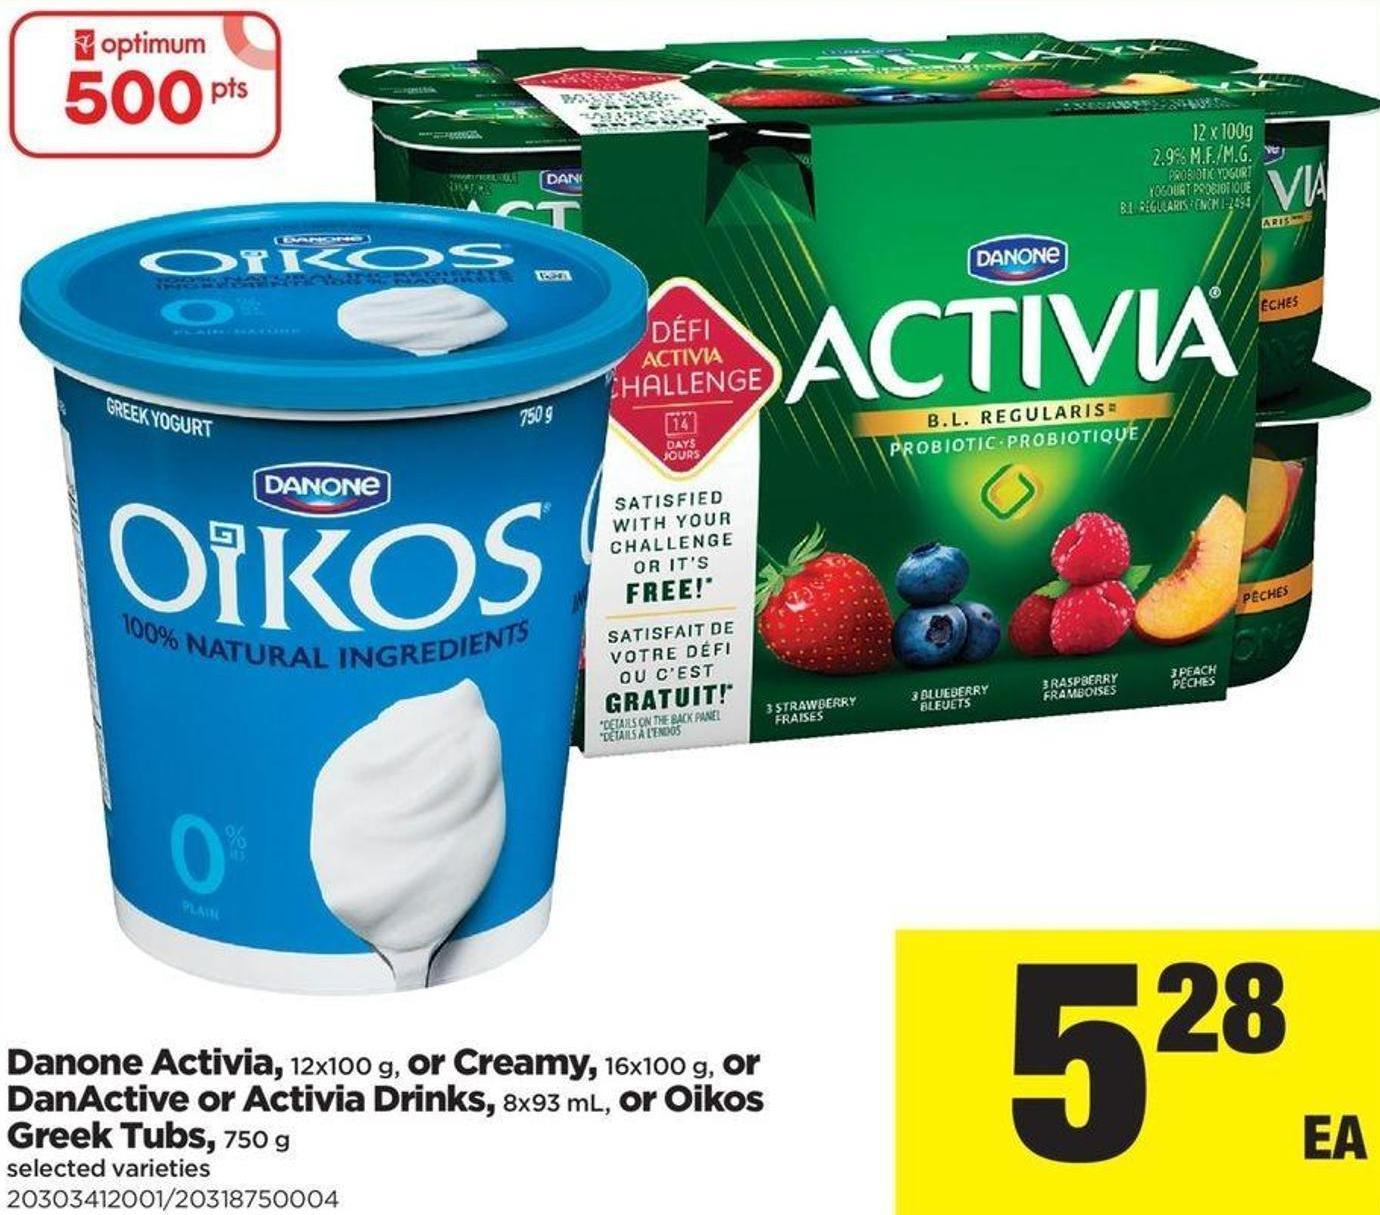 Danone Activia - 12x100 G - Or Creamy - 16x100 G - Or Danactive Or Activia Drinks - 8x93 Ml - Or Oikos Greek Tubs - 750 G